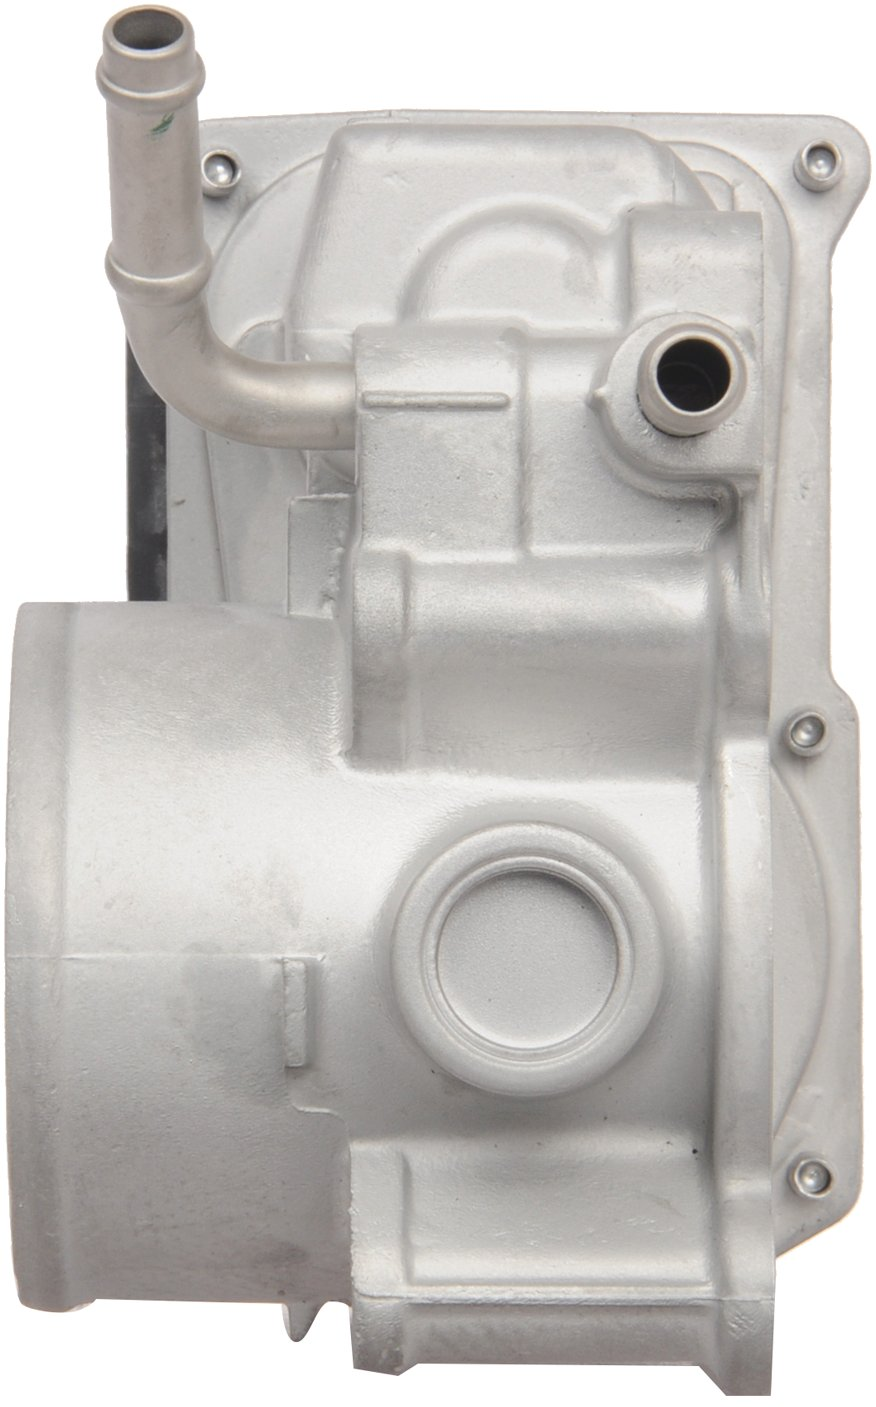 2006 Pontiac Vibe Fuel Injection Throttle Body A1 67-8003